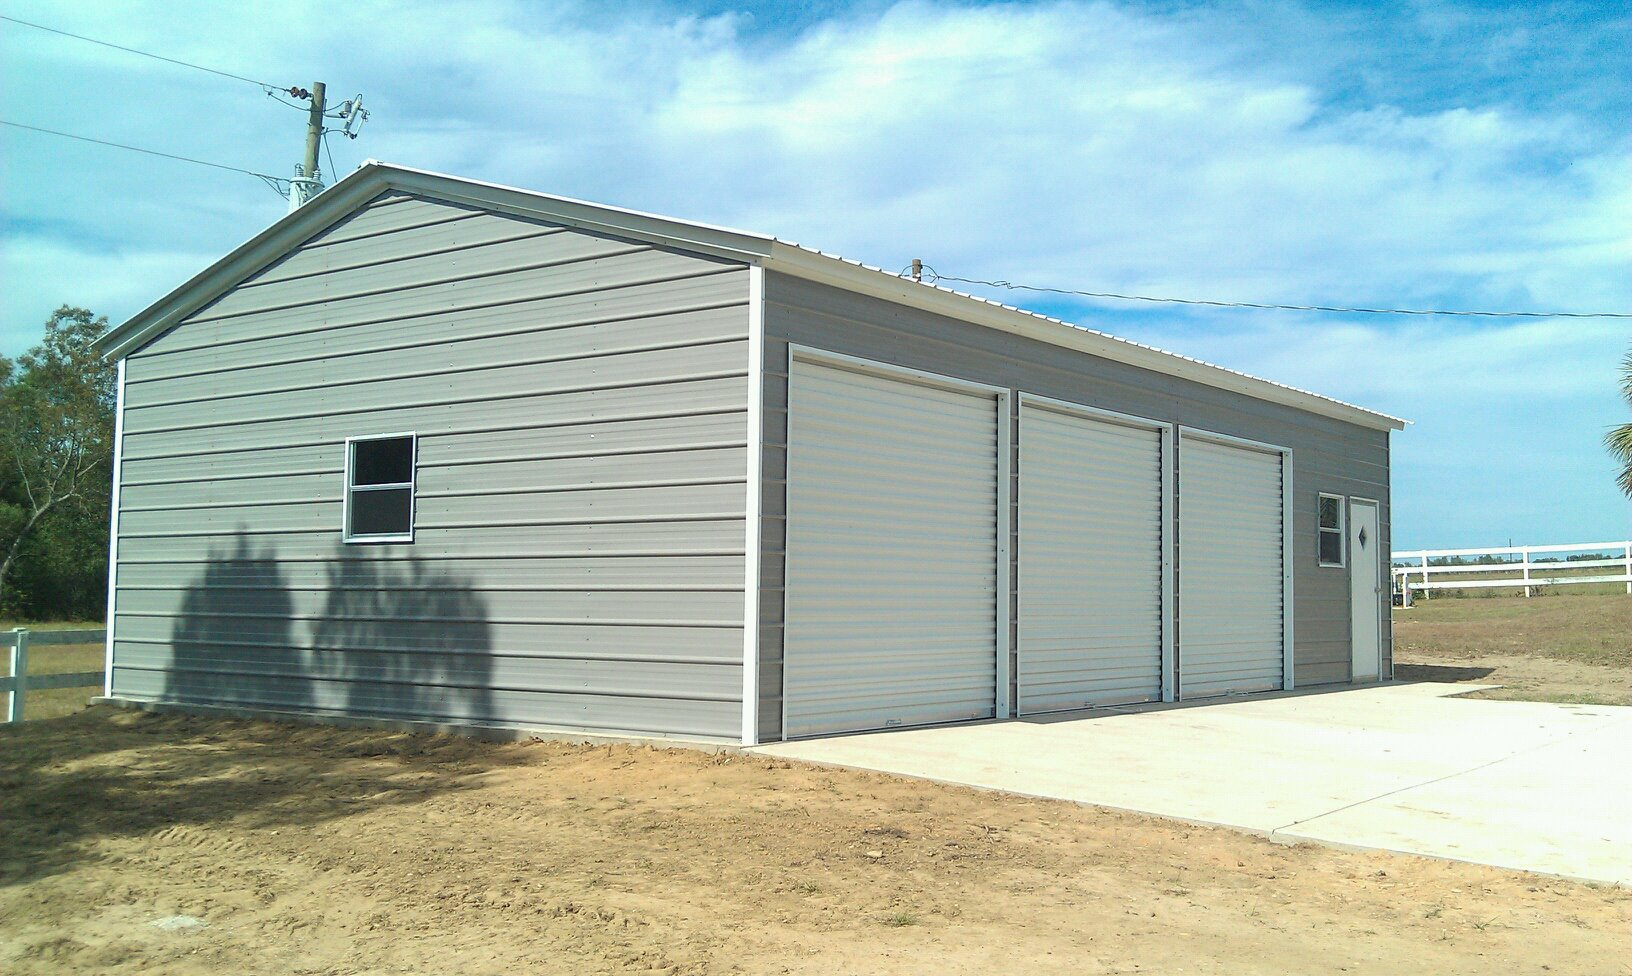 Prefab Carports Texas : Carports for sale in texas aluminum carport and canopy